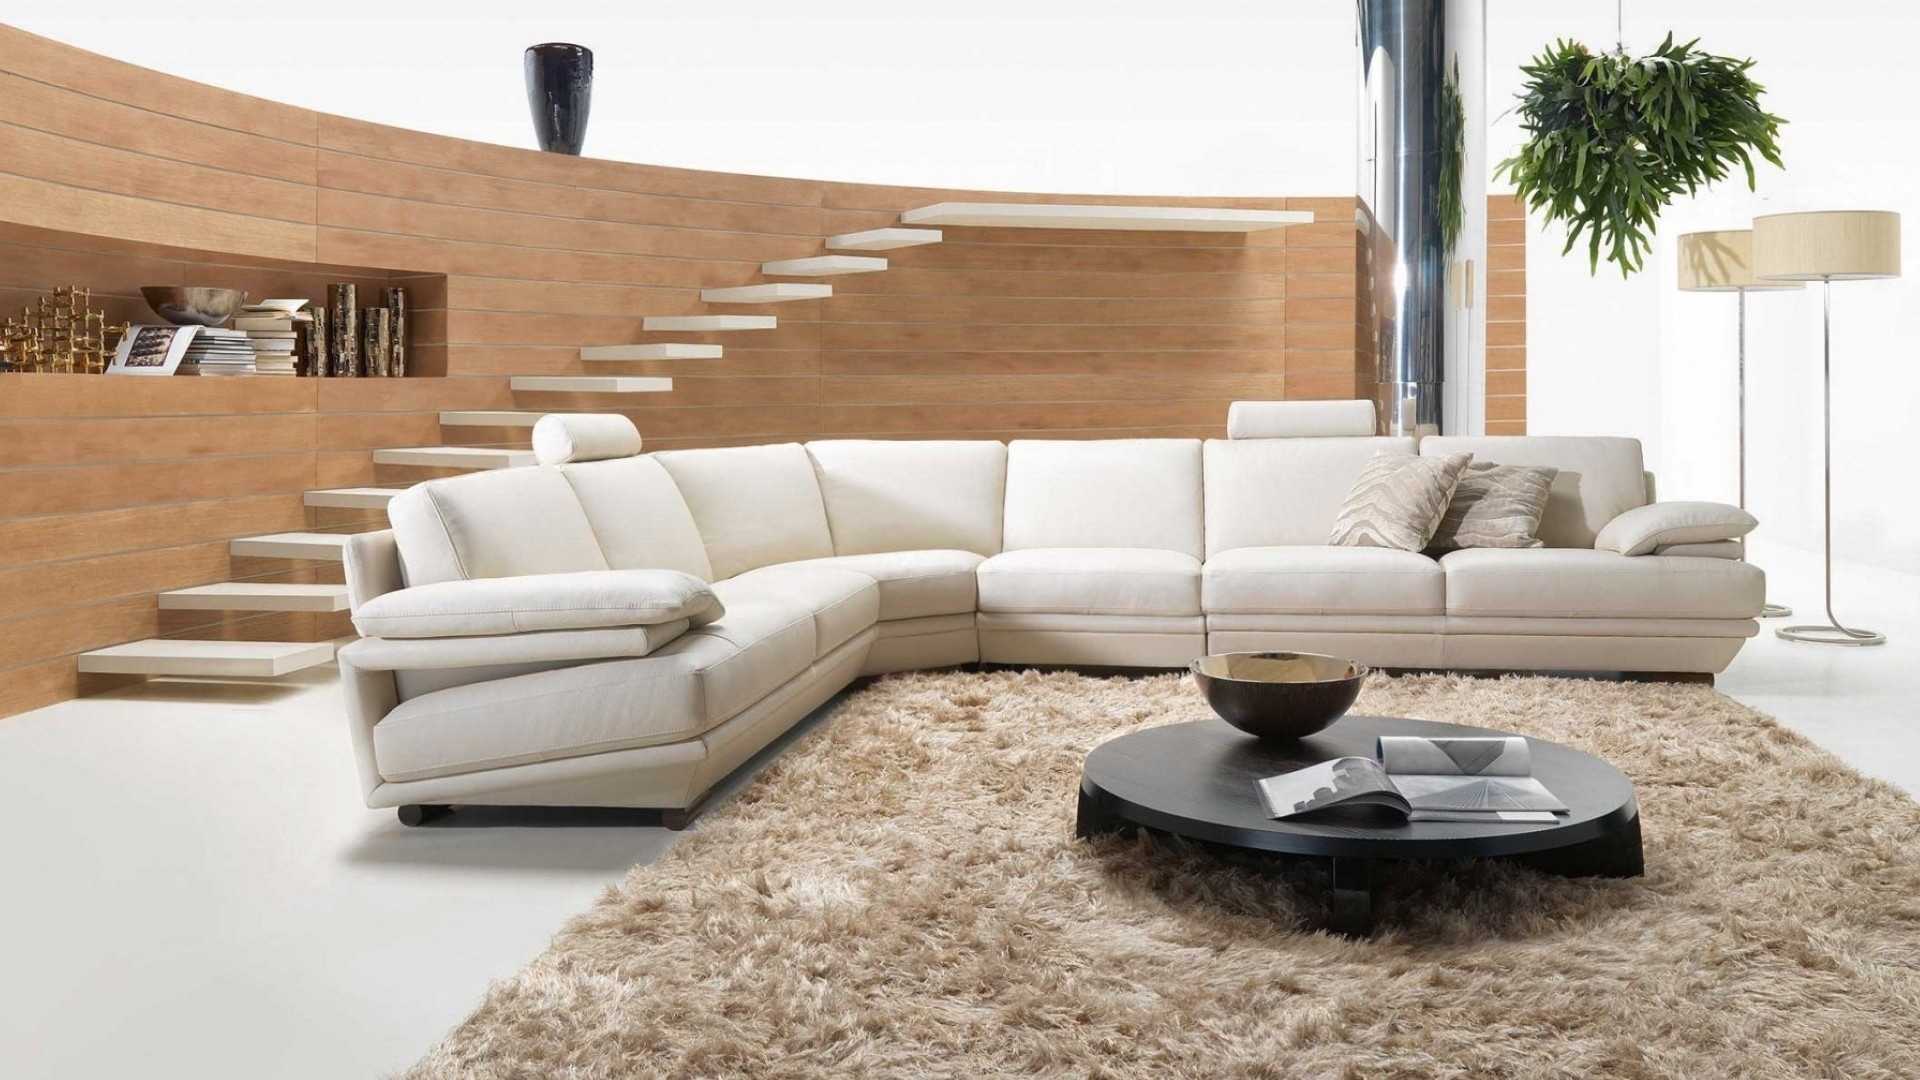 Natuzzi Sectional Sofa – Home And Textiles For Natuzzi Sectional Sofas (View 7 of 10)